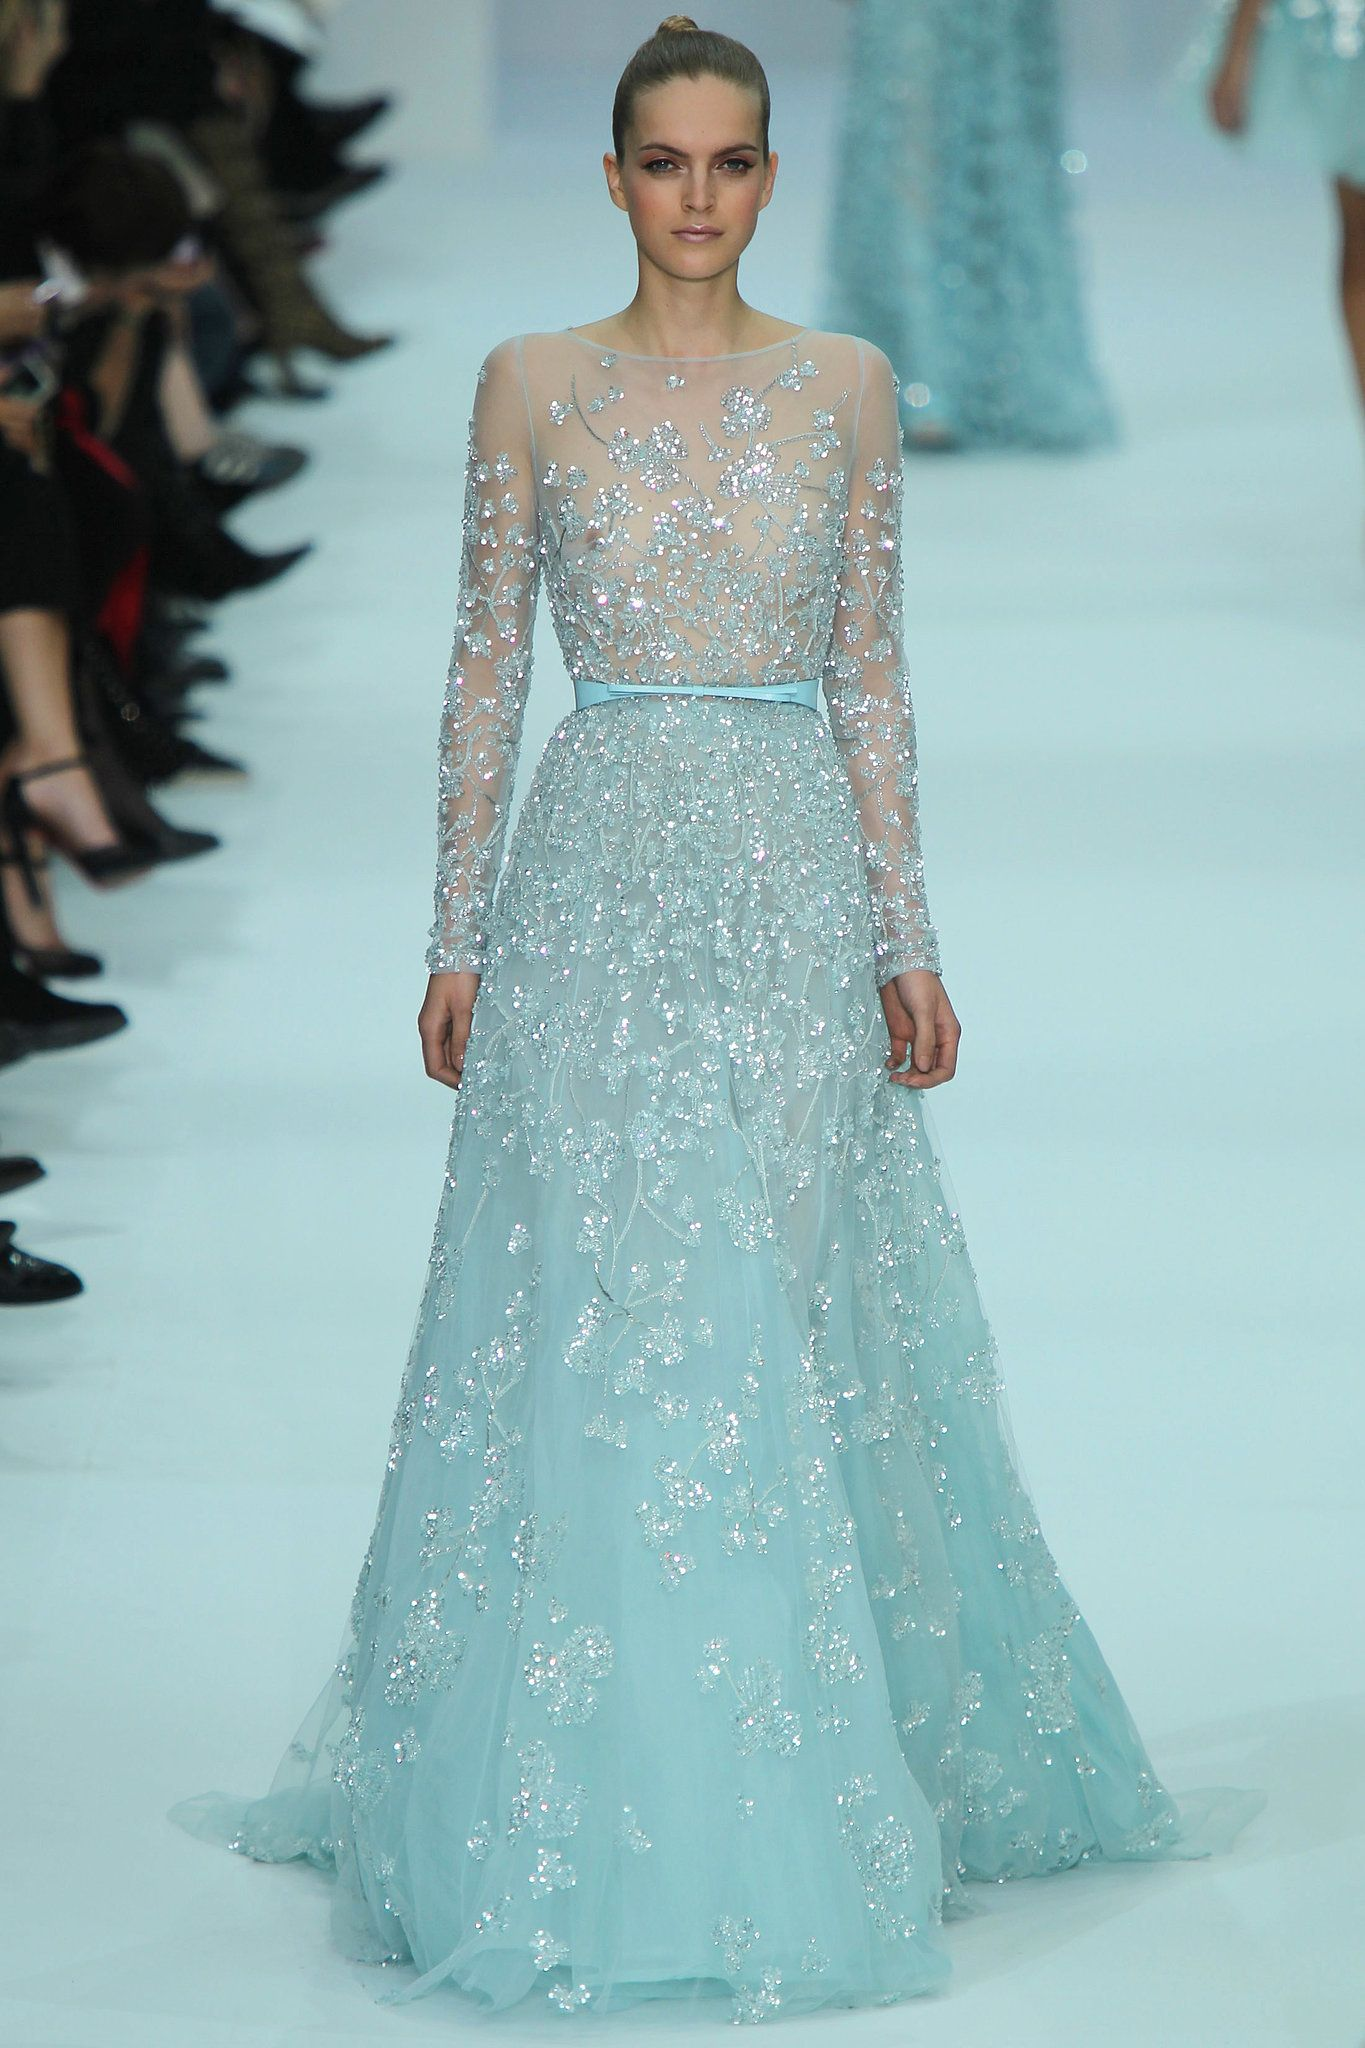 The Dress | Elie saab, Frozen y Vestiditos